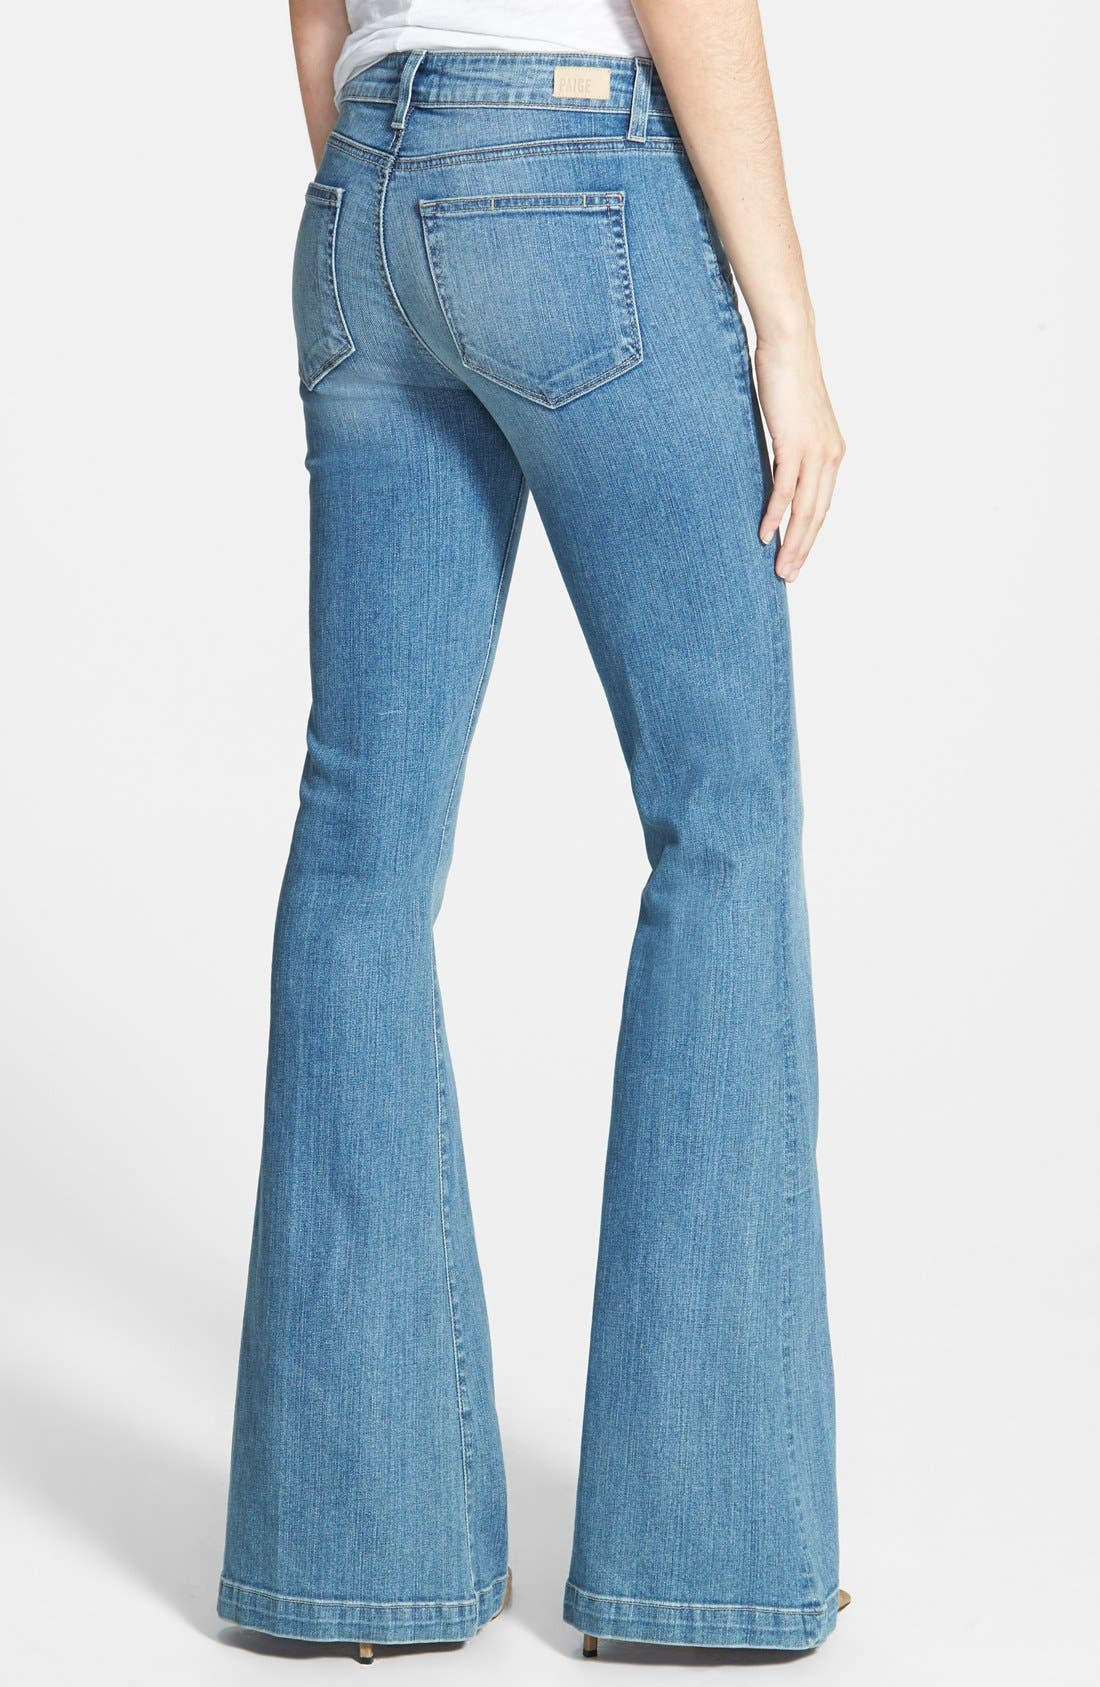 Denim 'Fionna' Flare Jeans,                             Alternate thumbnail 2, color,                             Paulina No Whiskers